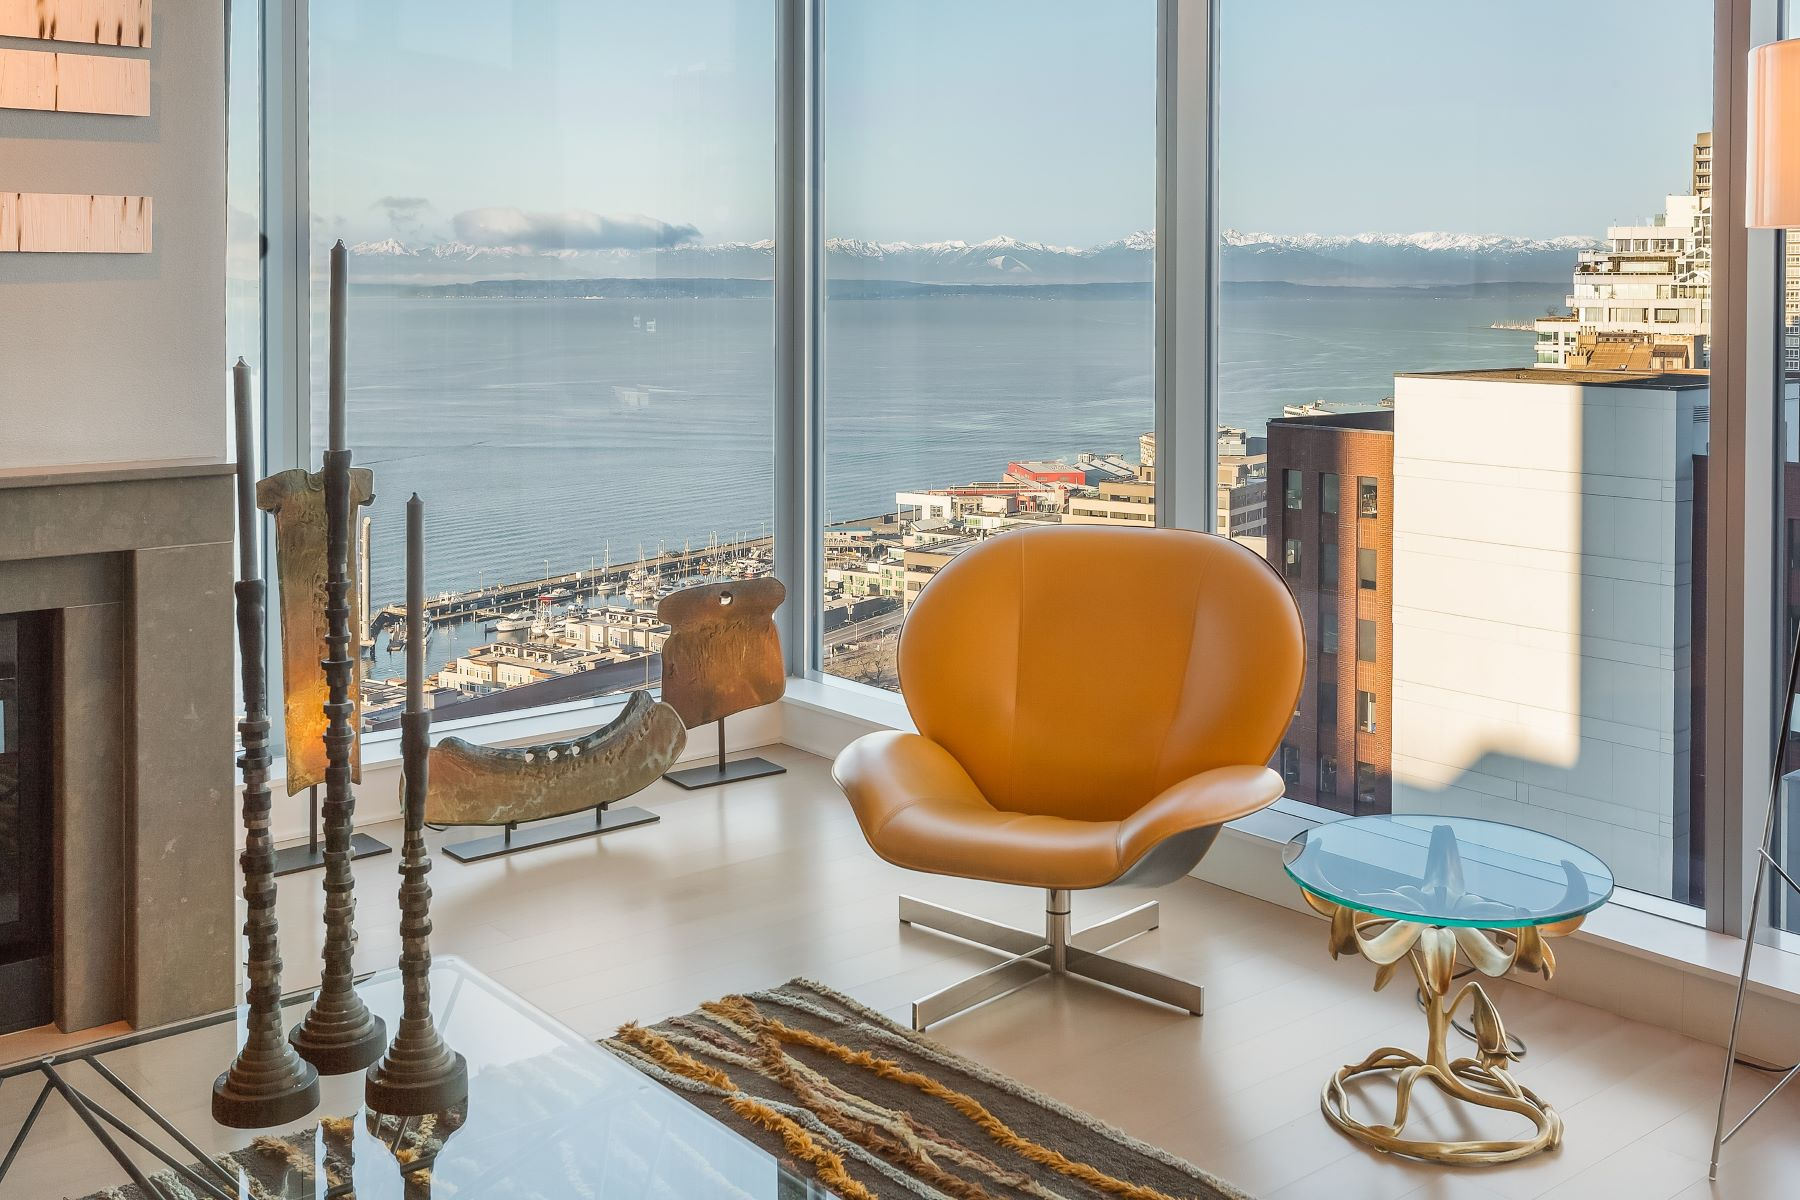 Condominium for Sale at Spectacular Residence In The of Pike Place Market 1521 2nd Ave #1901 Downtown, Seattle, Washington, 98101 United States